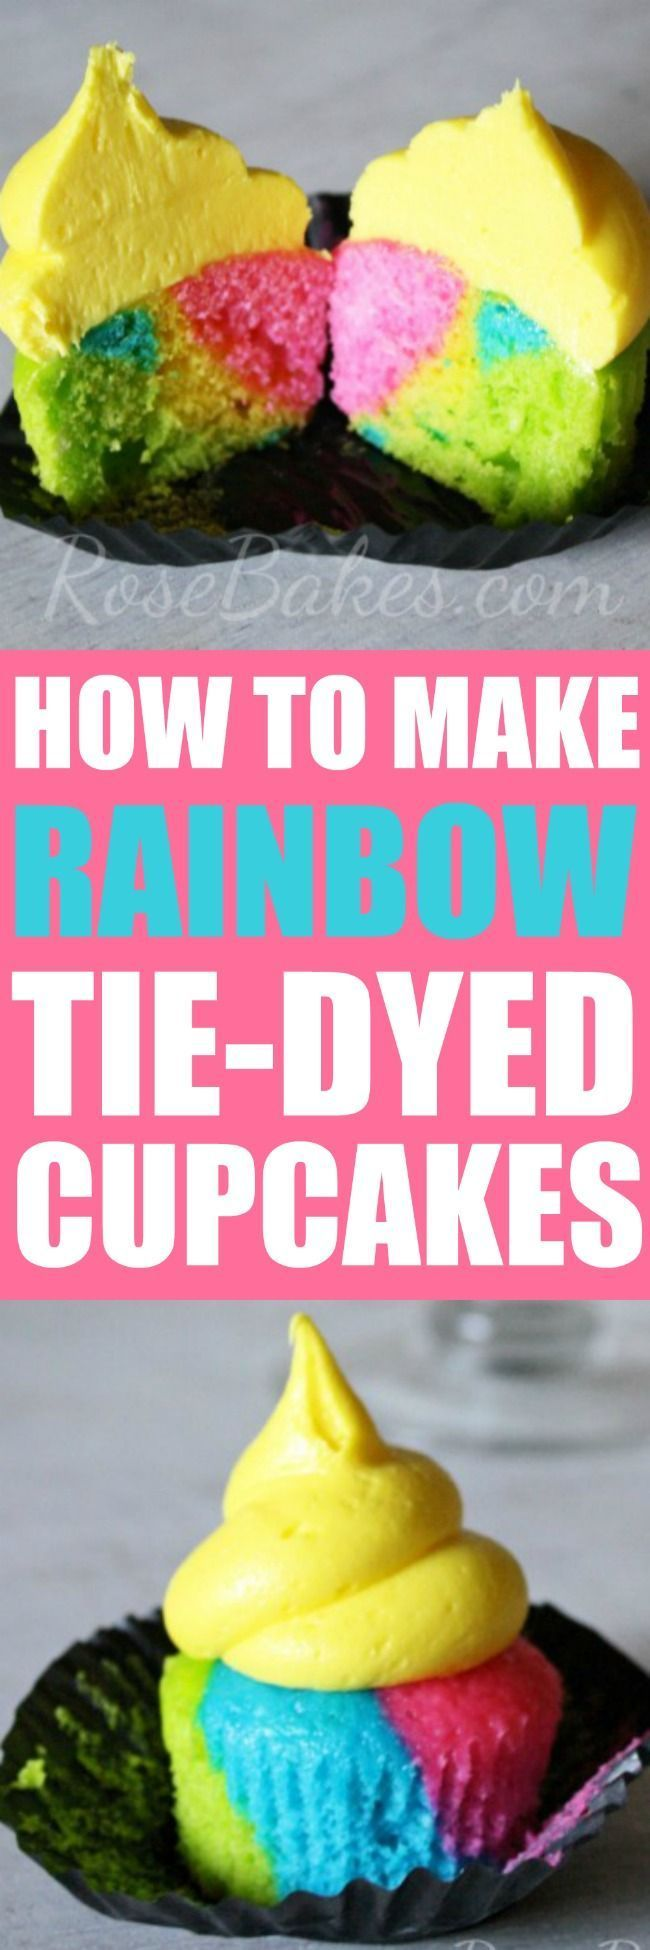 1774 best cake decorating tutorials images on pinterest for How to make tie dye roses